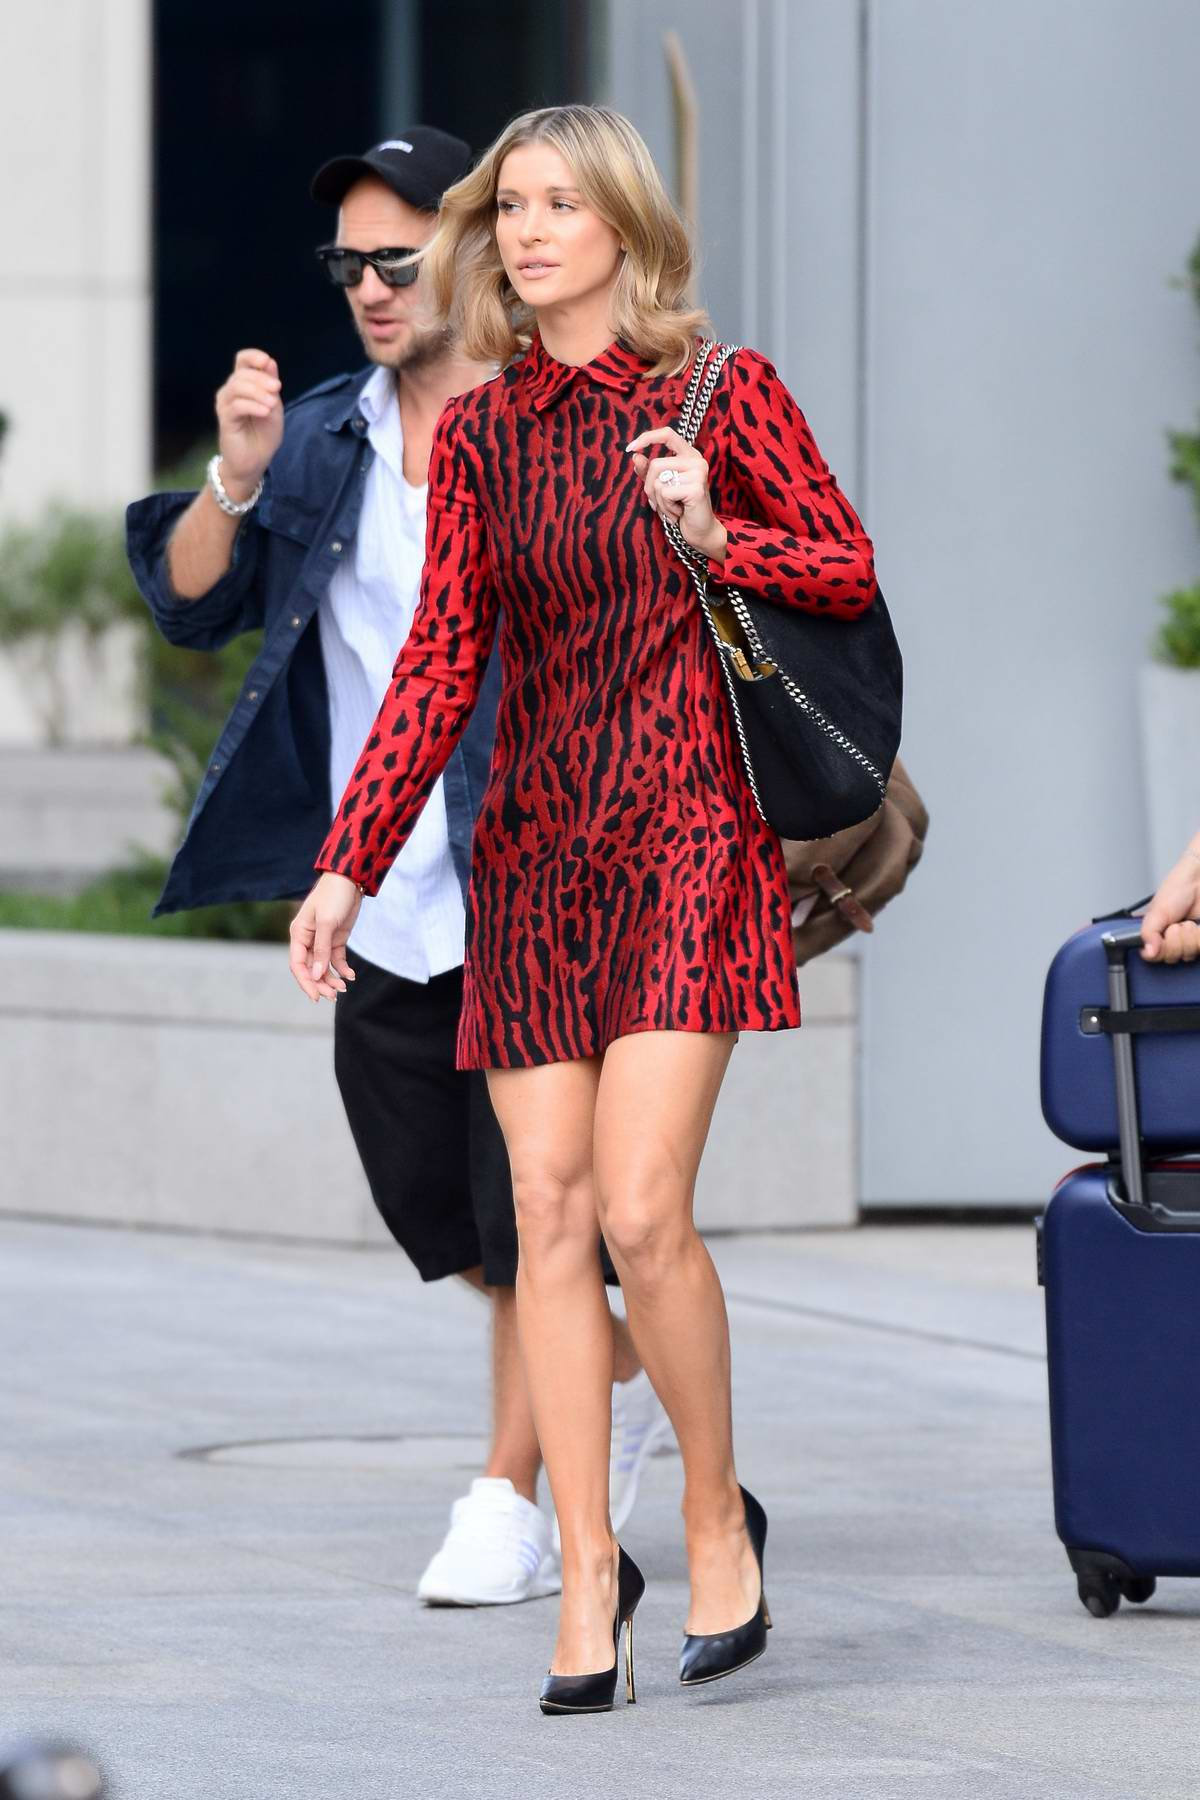 Joanna Krupa wears a red animal print dress as she heads out in Warsaw, Poland